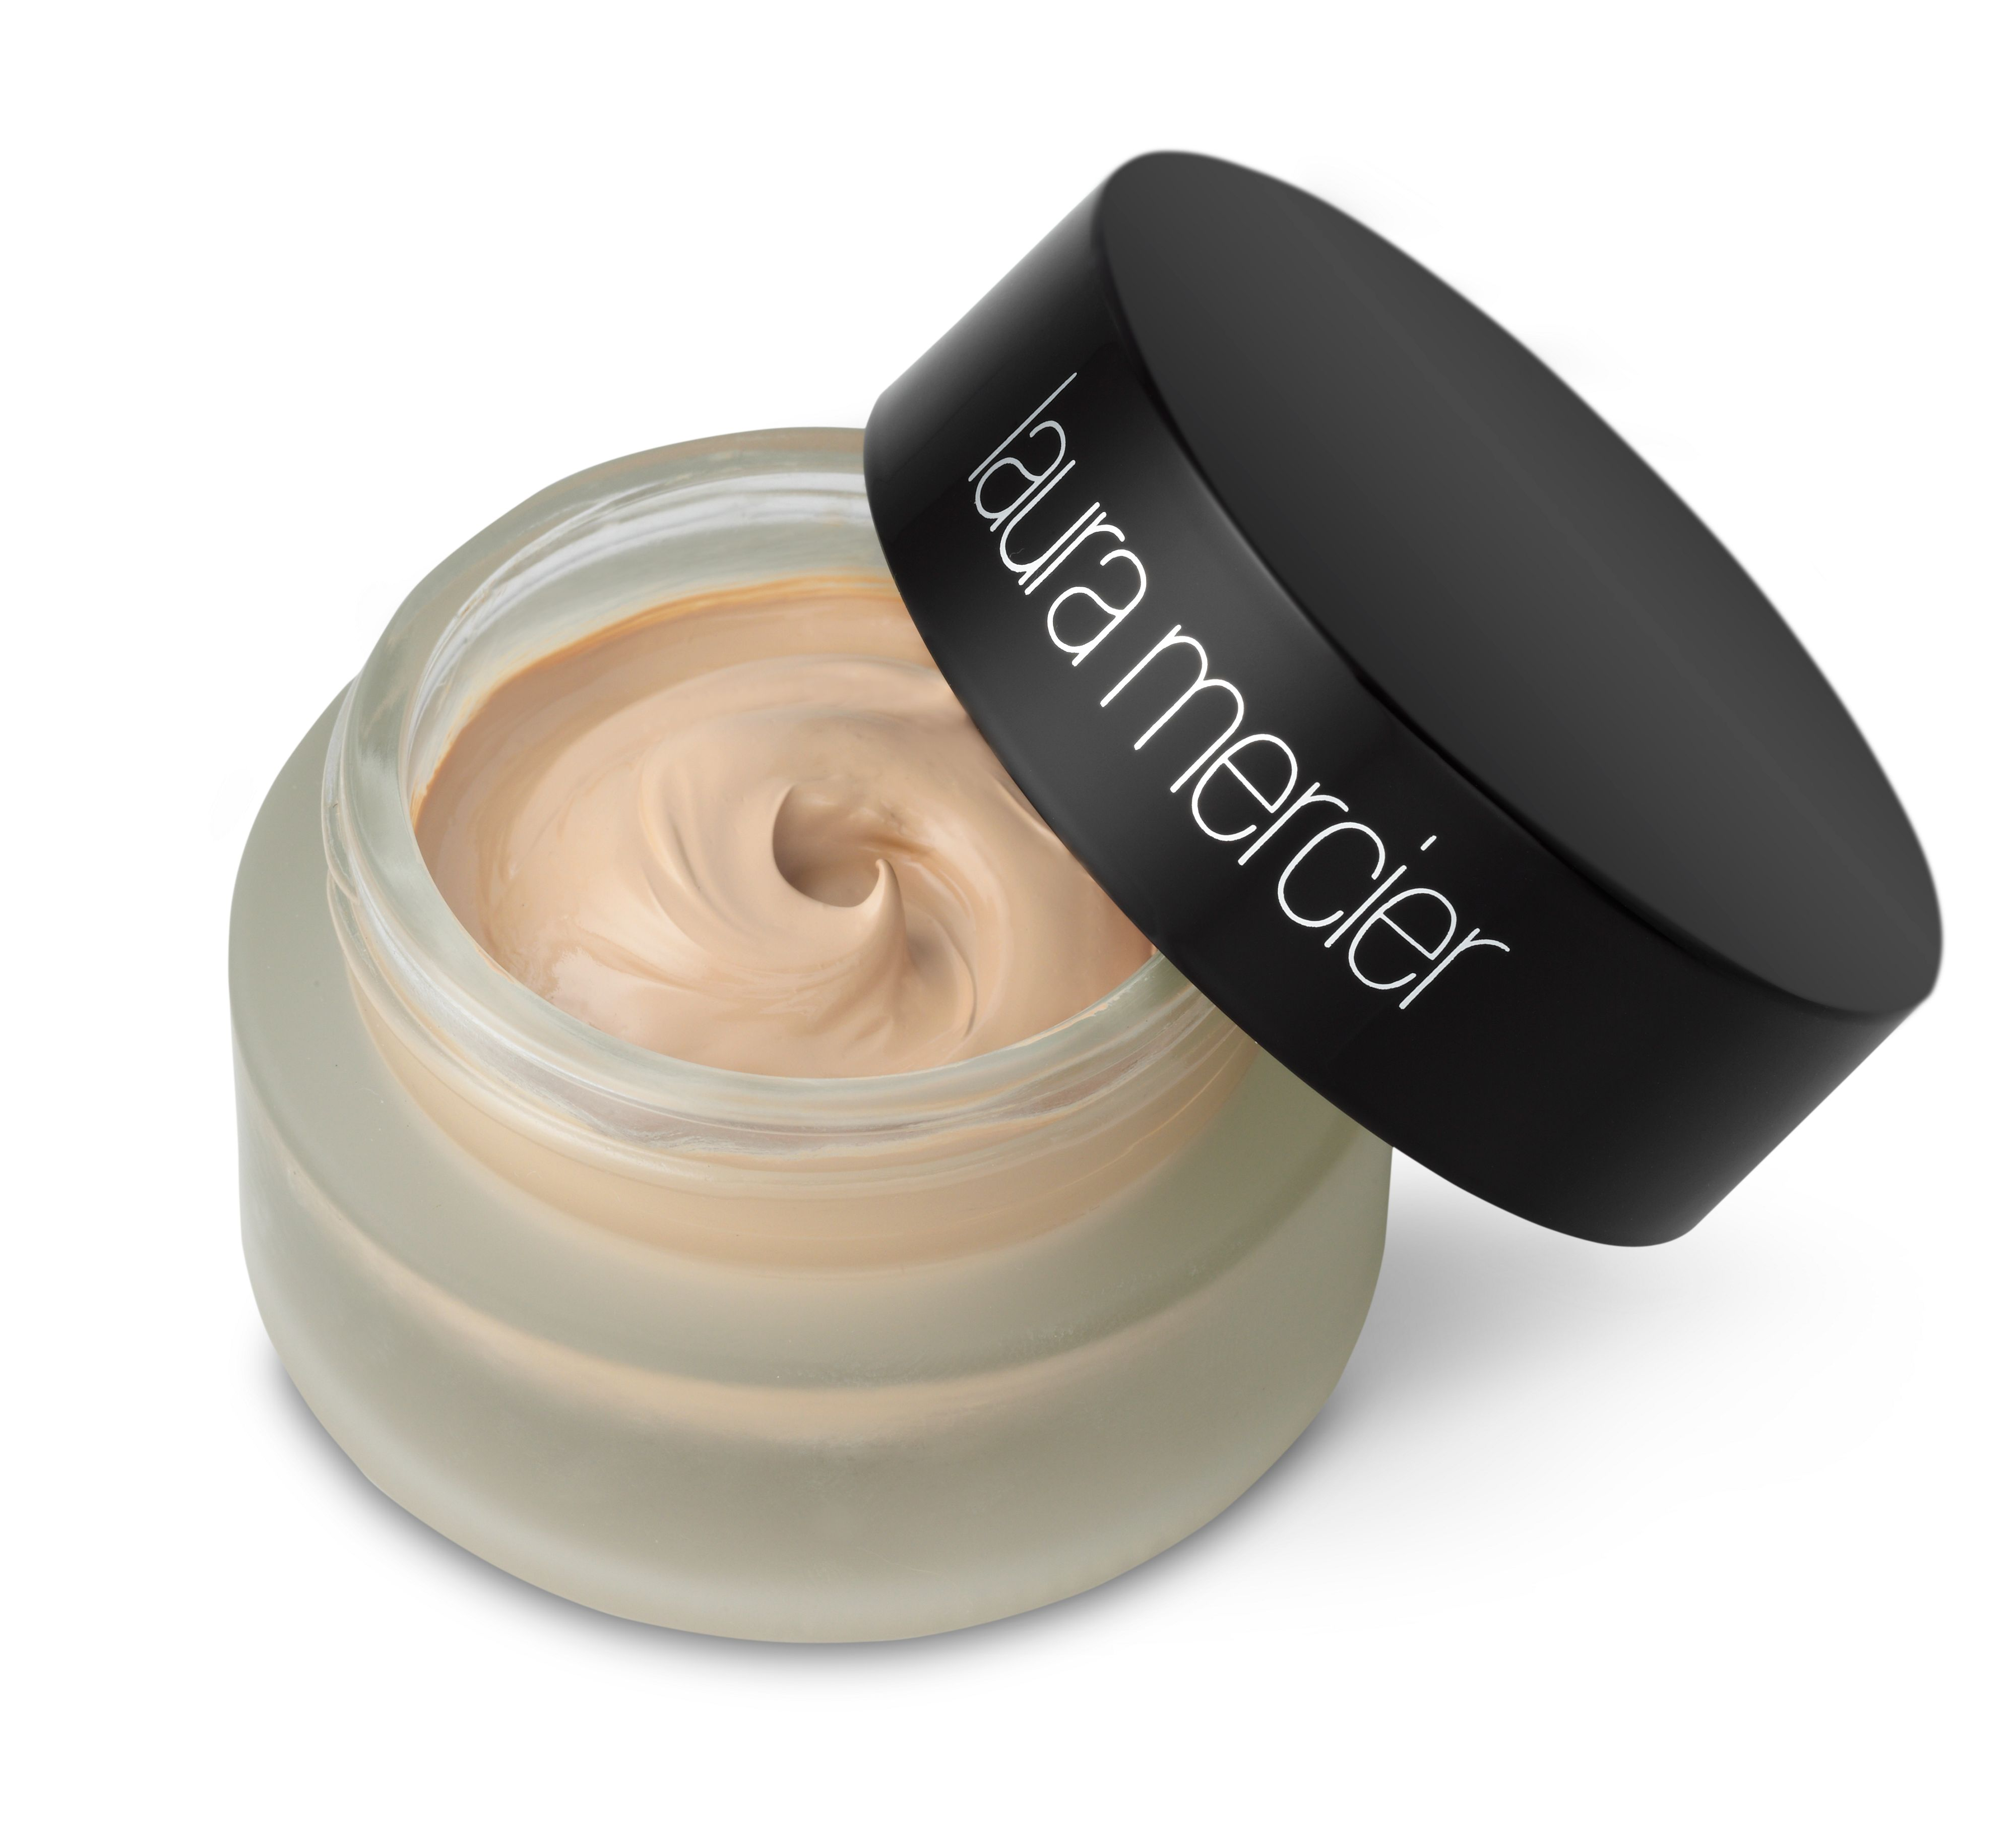 Crème Smooth Foundation